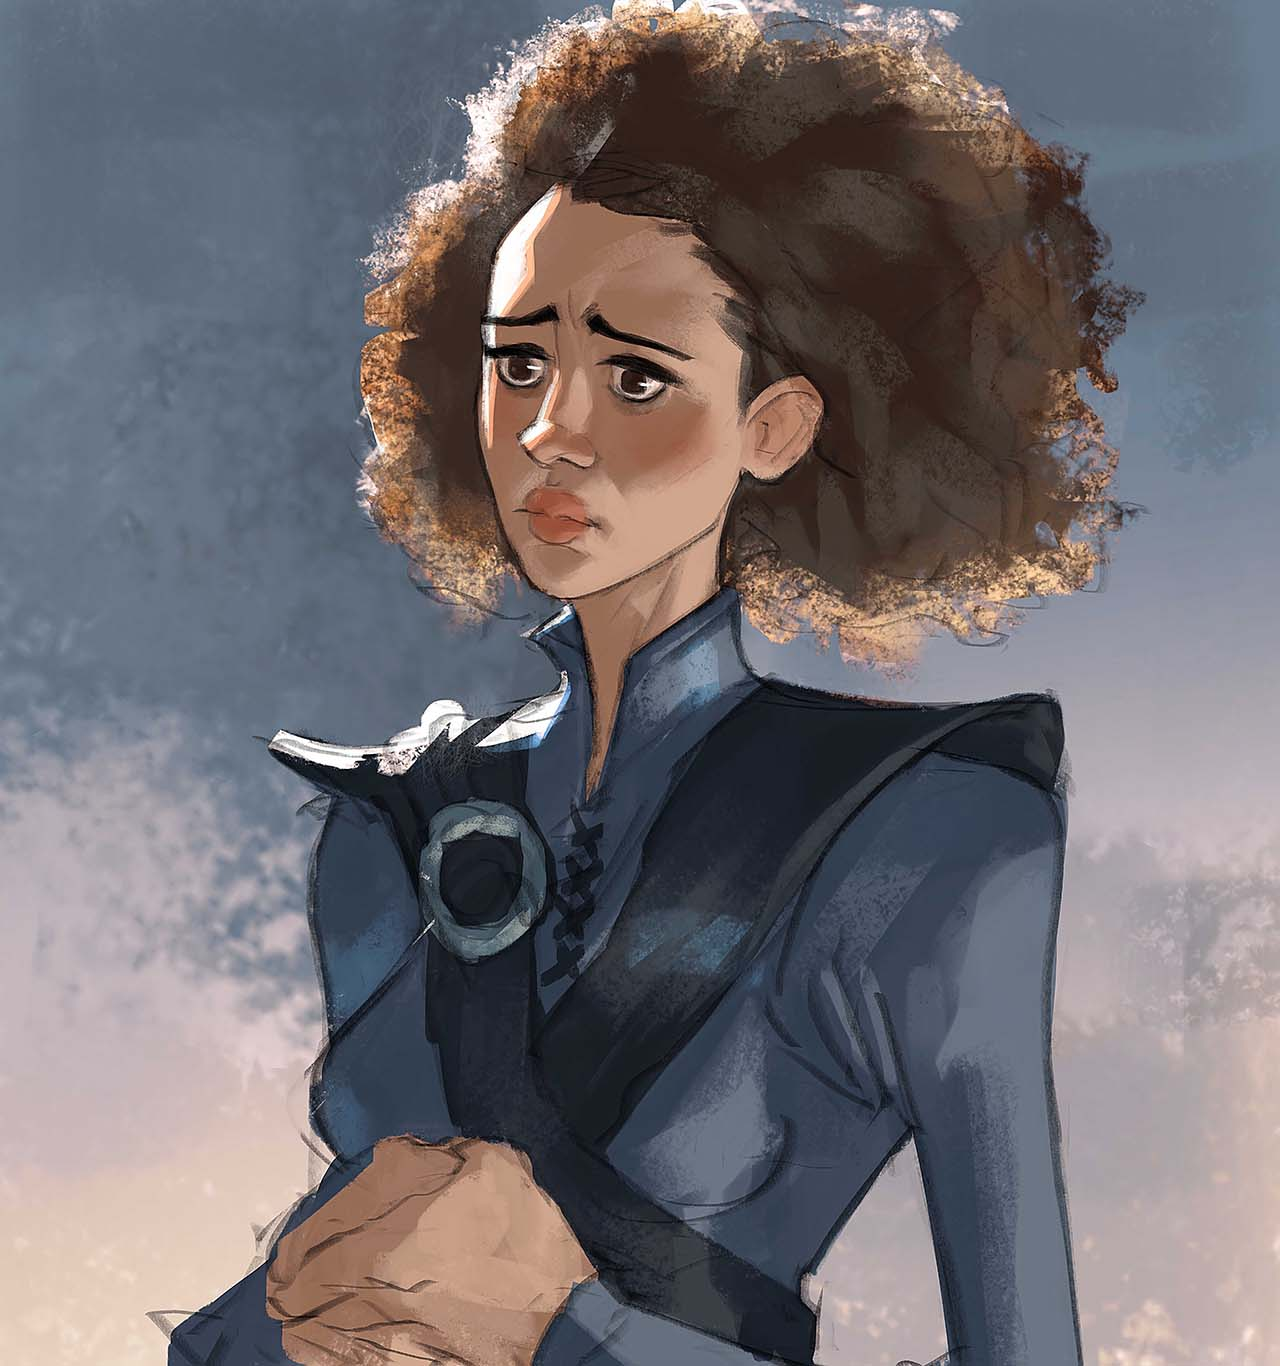 Game Of Thrones Characters By Ramon Nuñez: Artist Creates Unique Character Arts From Game Of Thrones